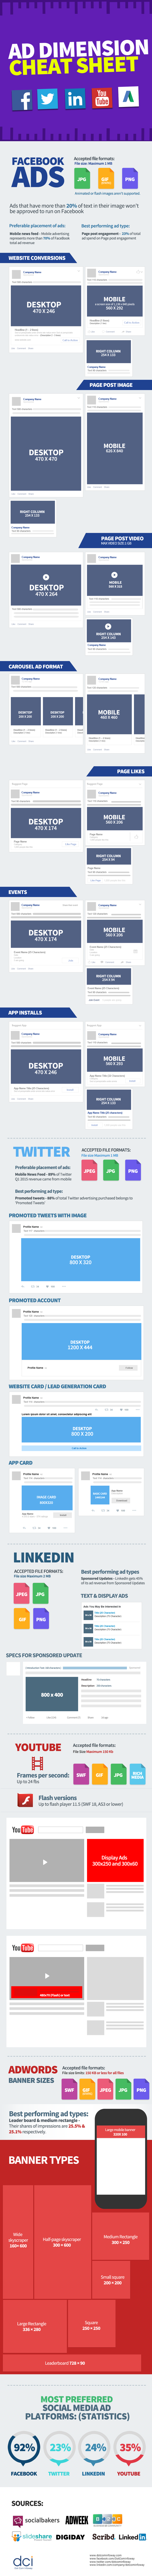 ad-image-size-guide-infographic.png